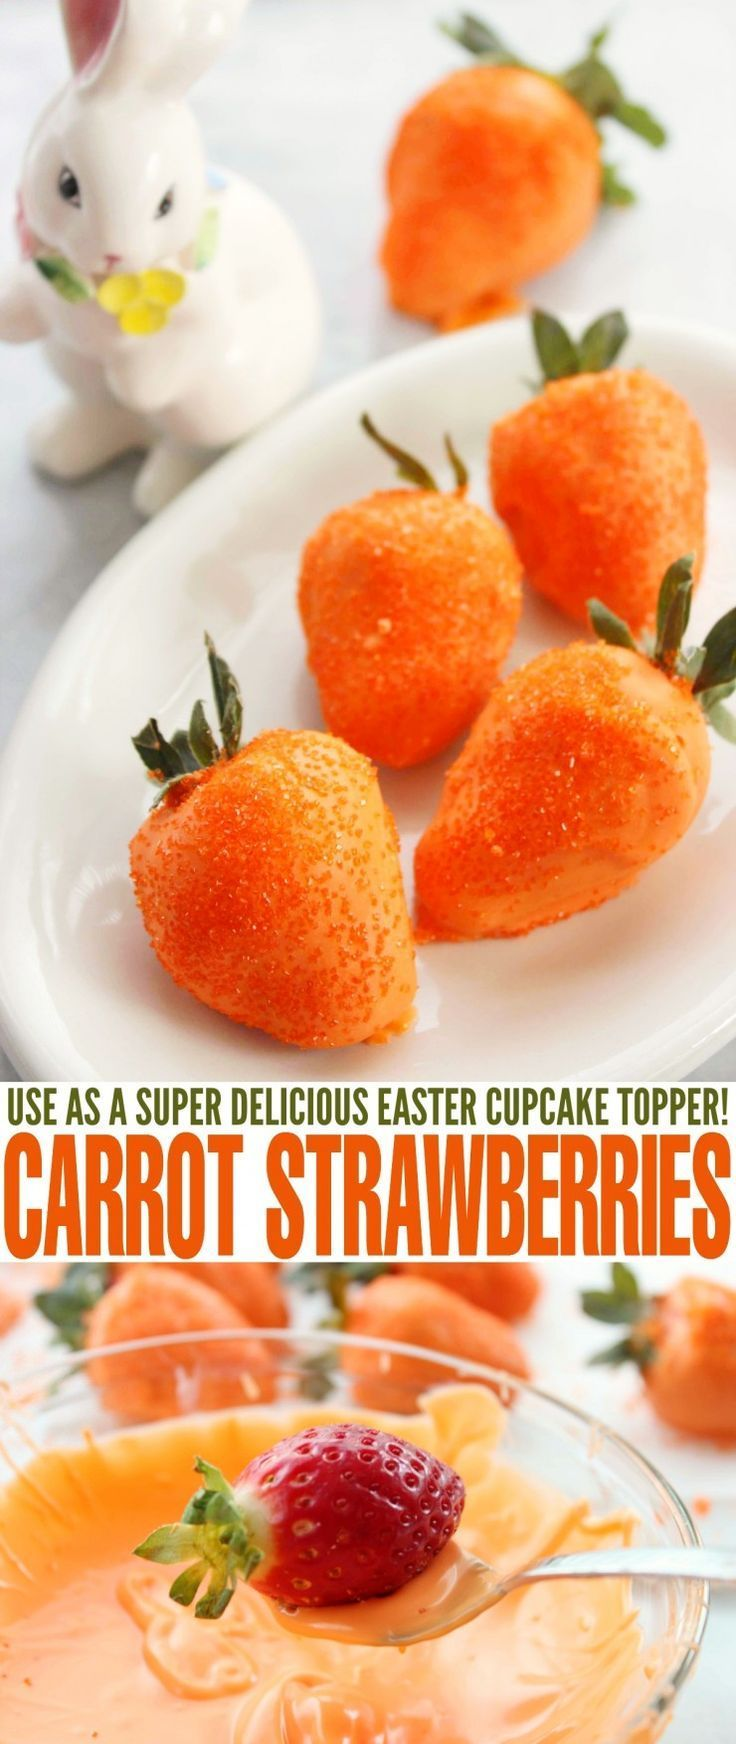 701 best fun food ideas for kids images on pinterest mothers day carrot strawberries are a super cute twist on chocolate covered strawberries that make them perfect for negle Gallery